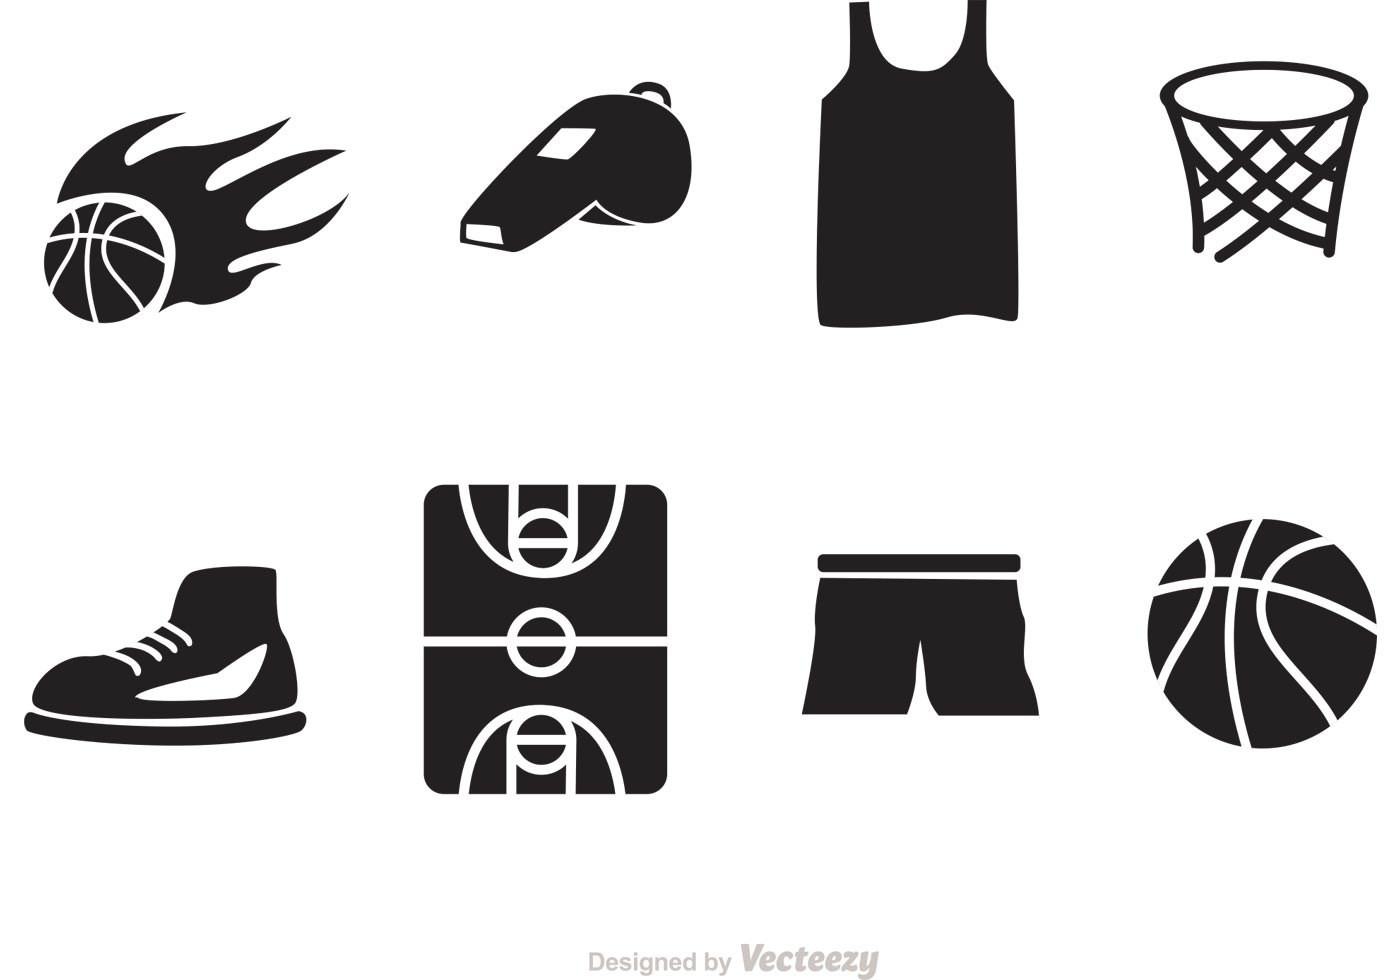 Basketball Vector Icons - Download Free Vector Art, Stock ...